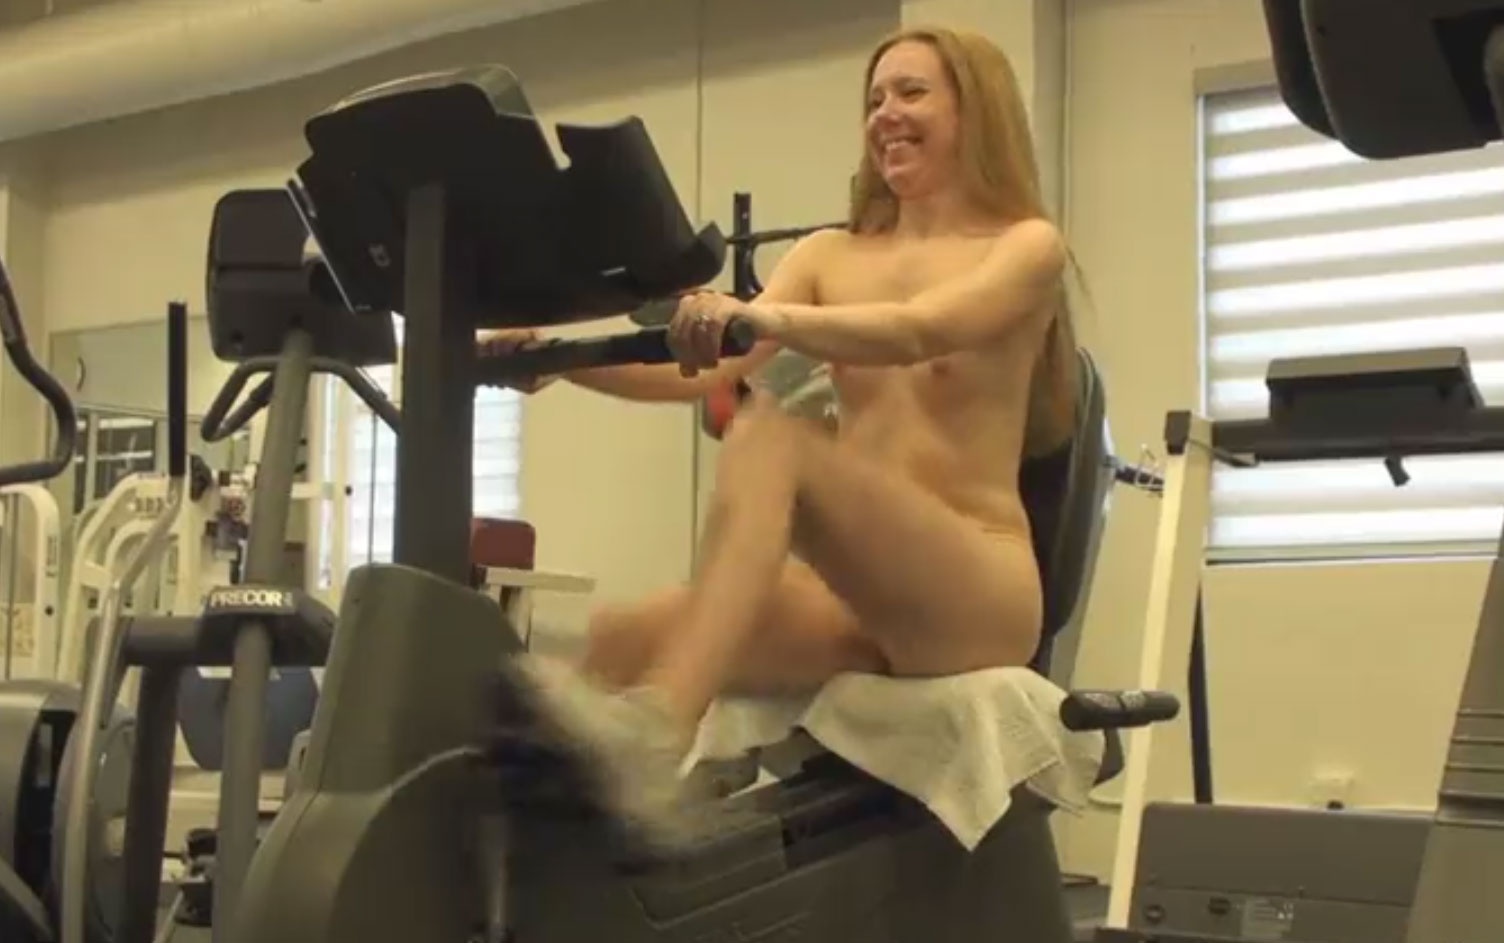 Naked Workout in the GYM